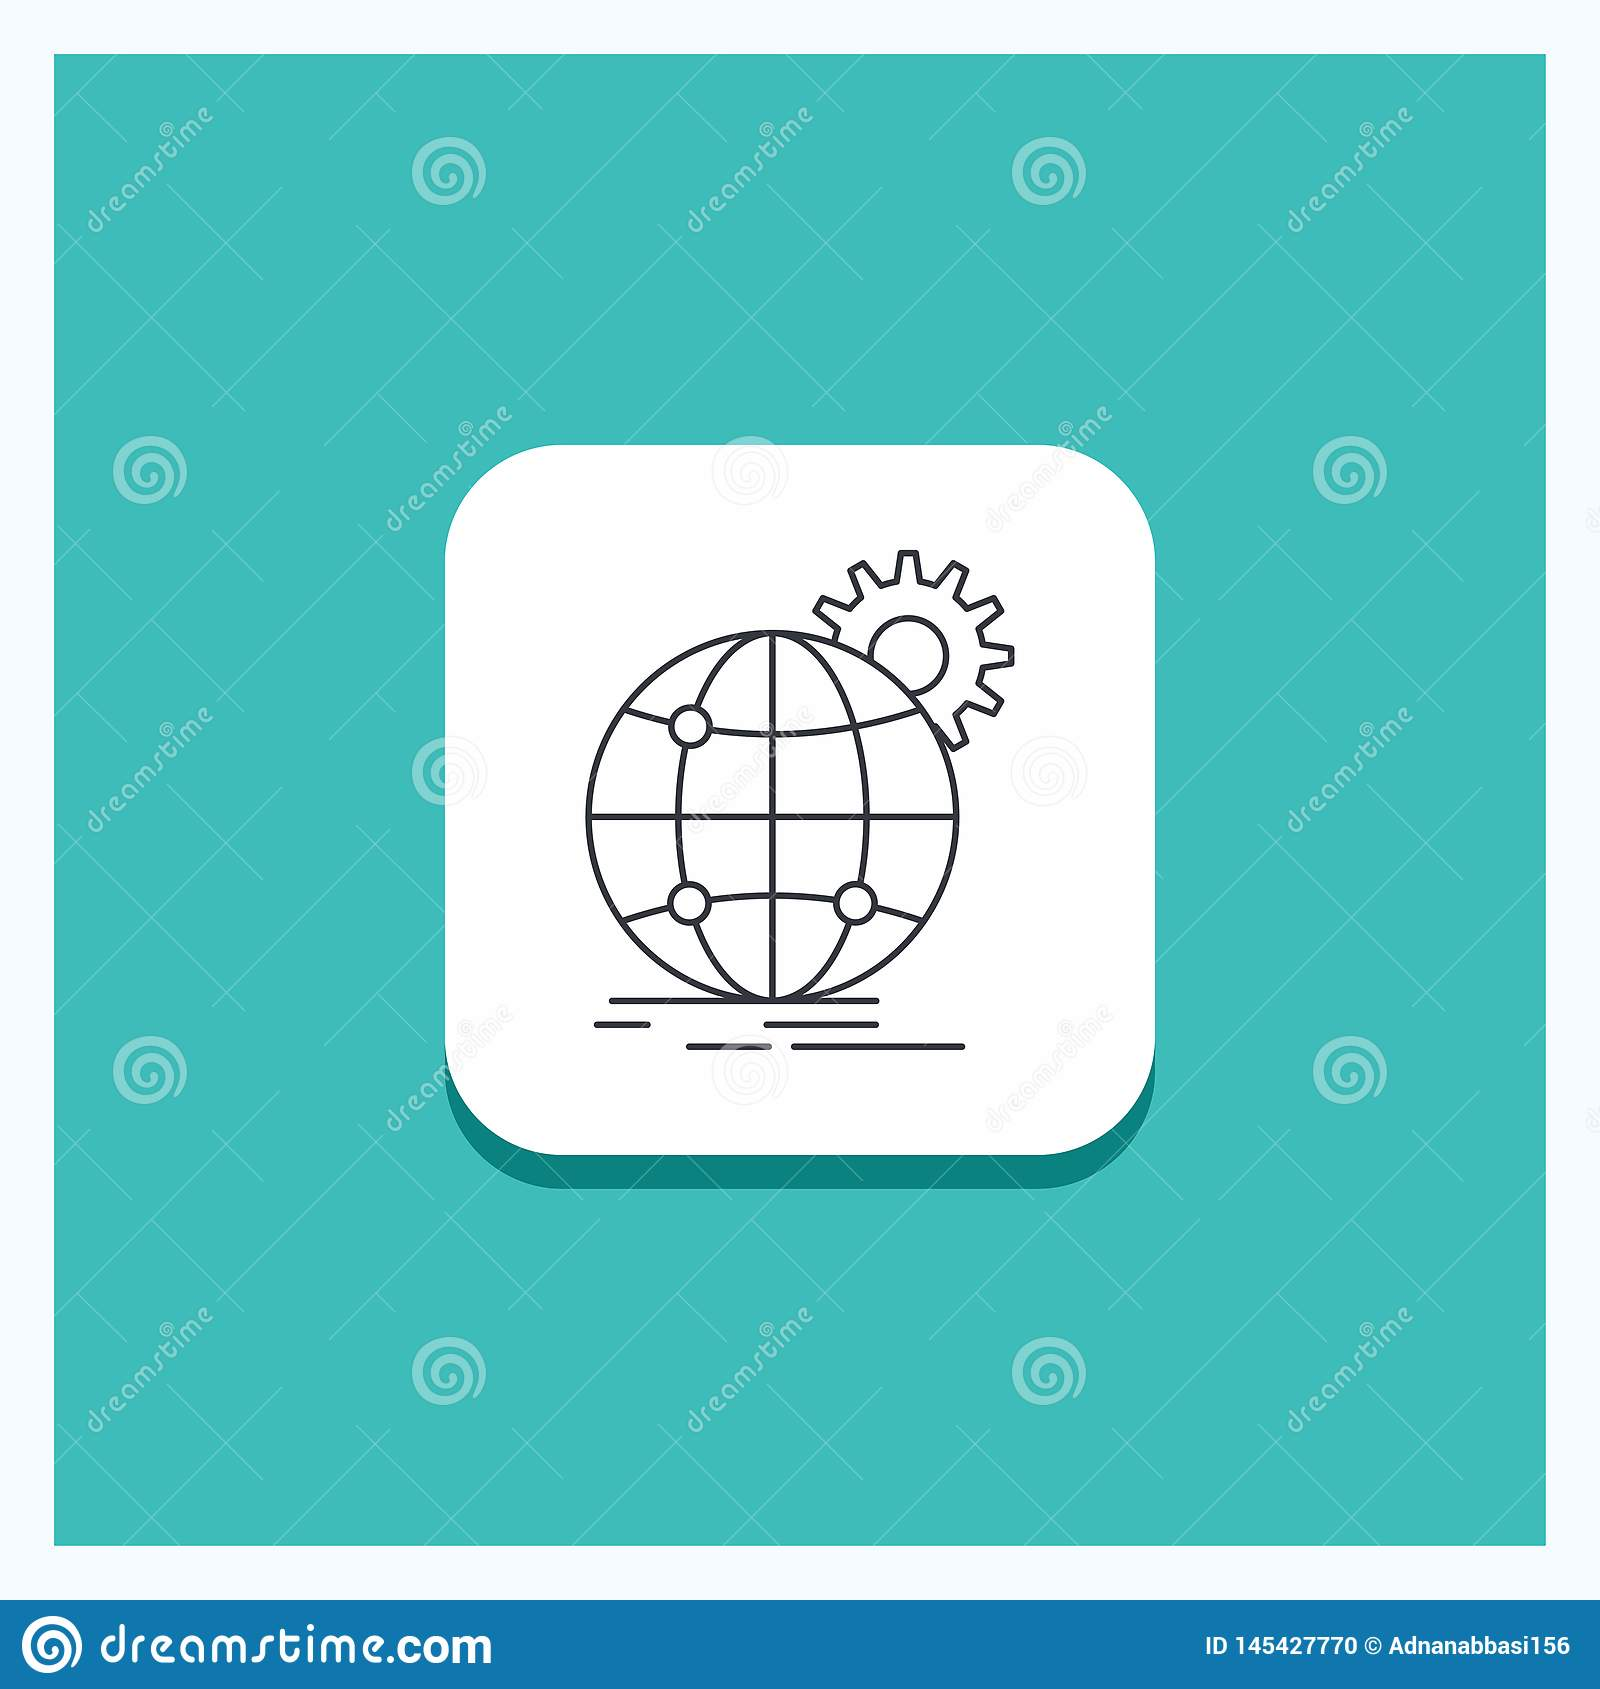 Round Button for international, business, globe, world wide, gear Line icon Turquoise Background